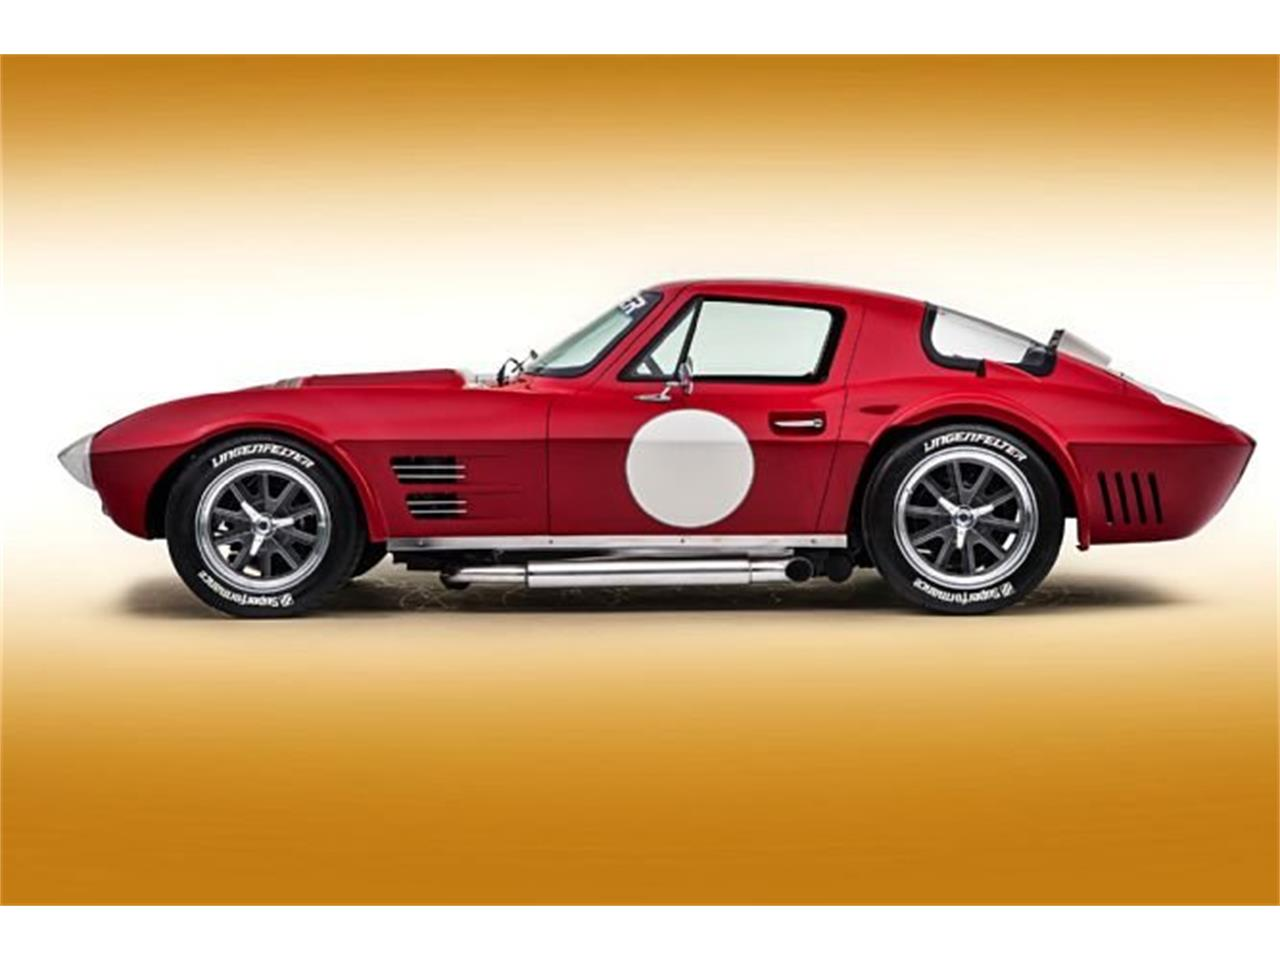 Large Picture of Classic 1963 Corvette Grand Sport - $189,950.00 Offered by Hillbank Motorsports - PNW3